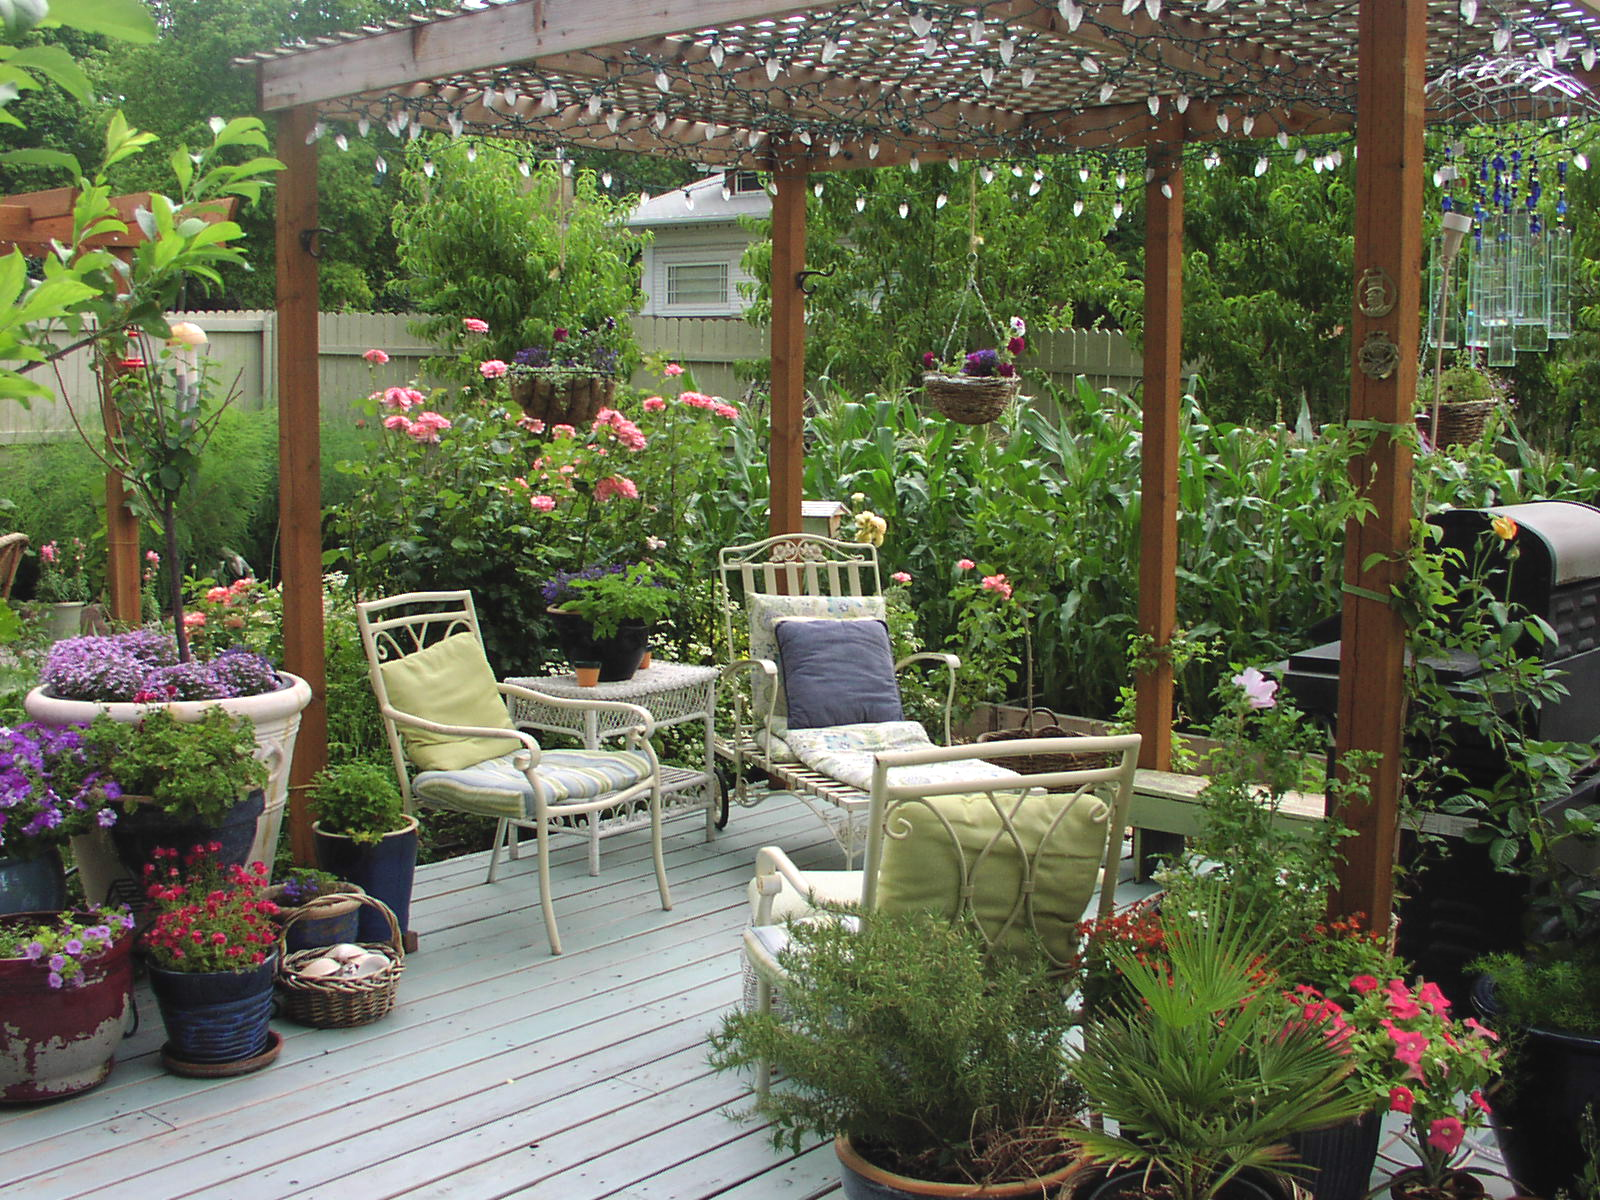 Pictures of deck gardens